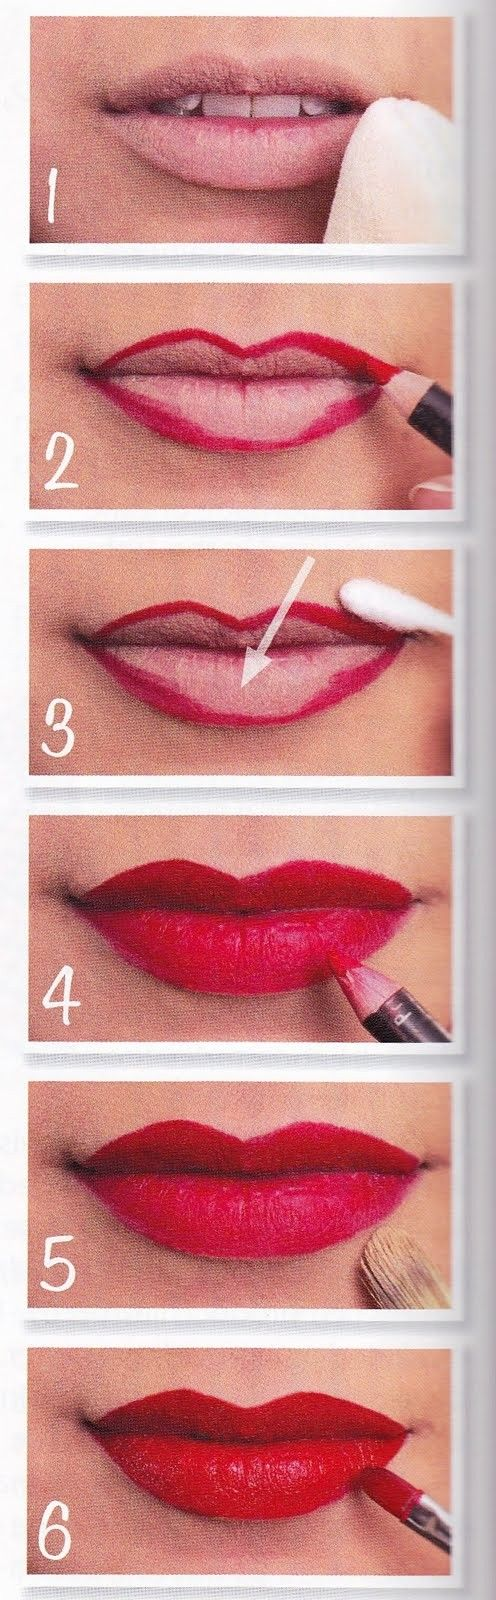 how to properly apply the perfect red lips: Red Lipsticks, Perfect Lips, Hair Makeup, Lips Makeup, Lips Liner, Perfect Red Lips, Makeup Lessons, Retro Makeup, Proper Applying